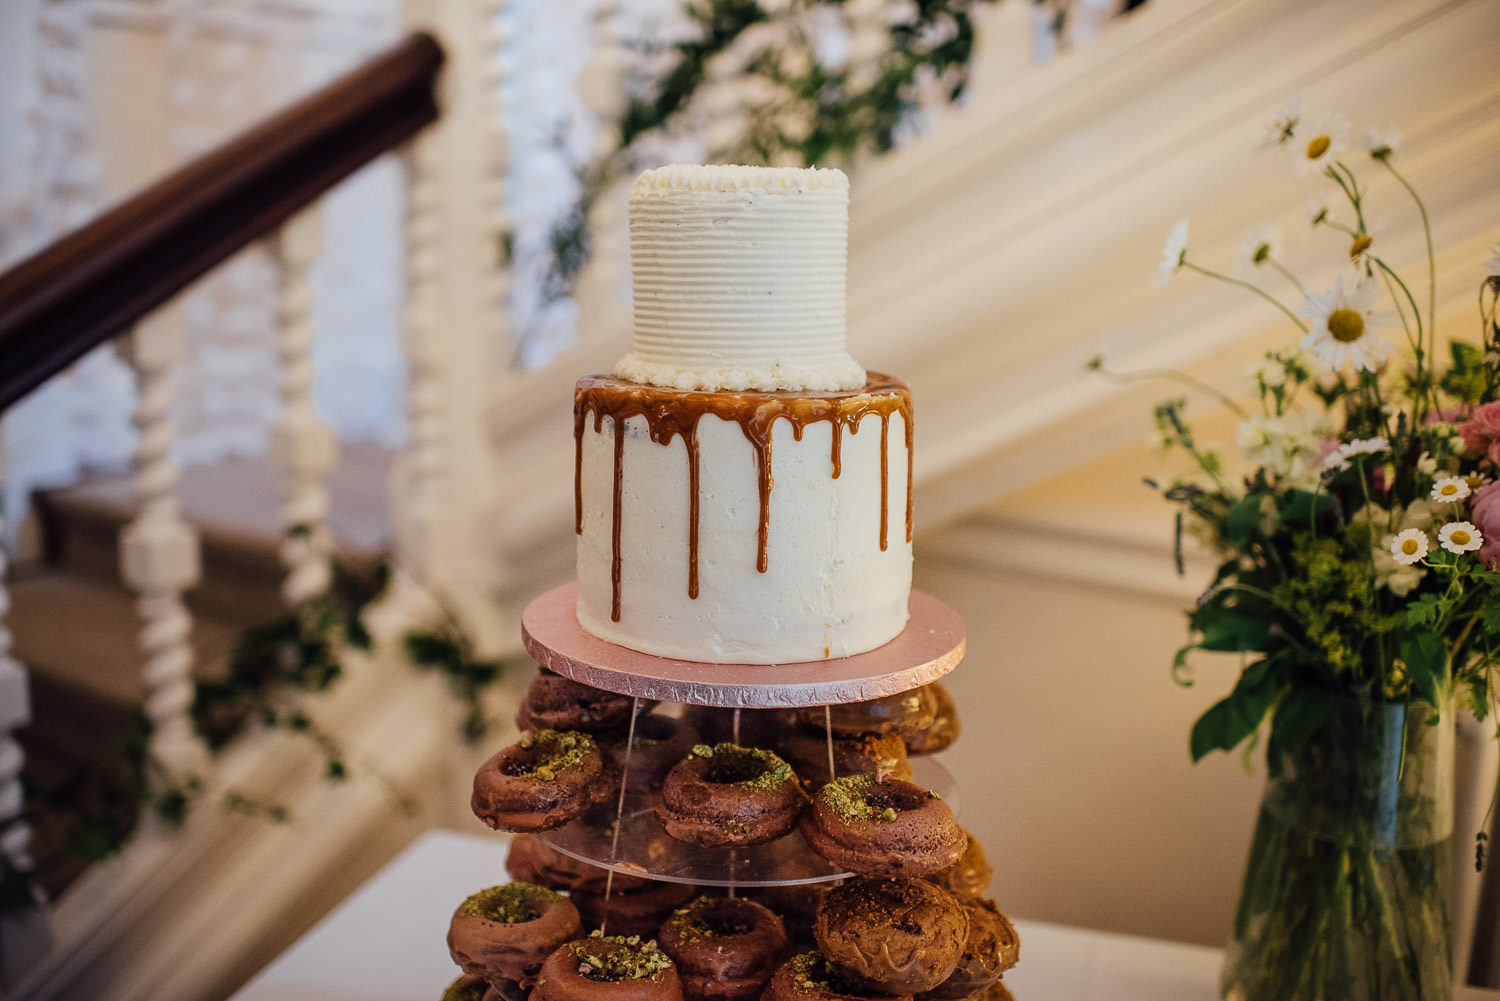 Doughnut wedding cake in Barley Wood House Bristol Wedding by bristol wedding photographer the shannons photography